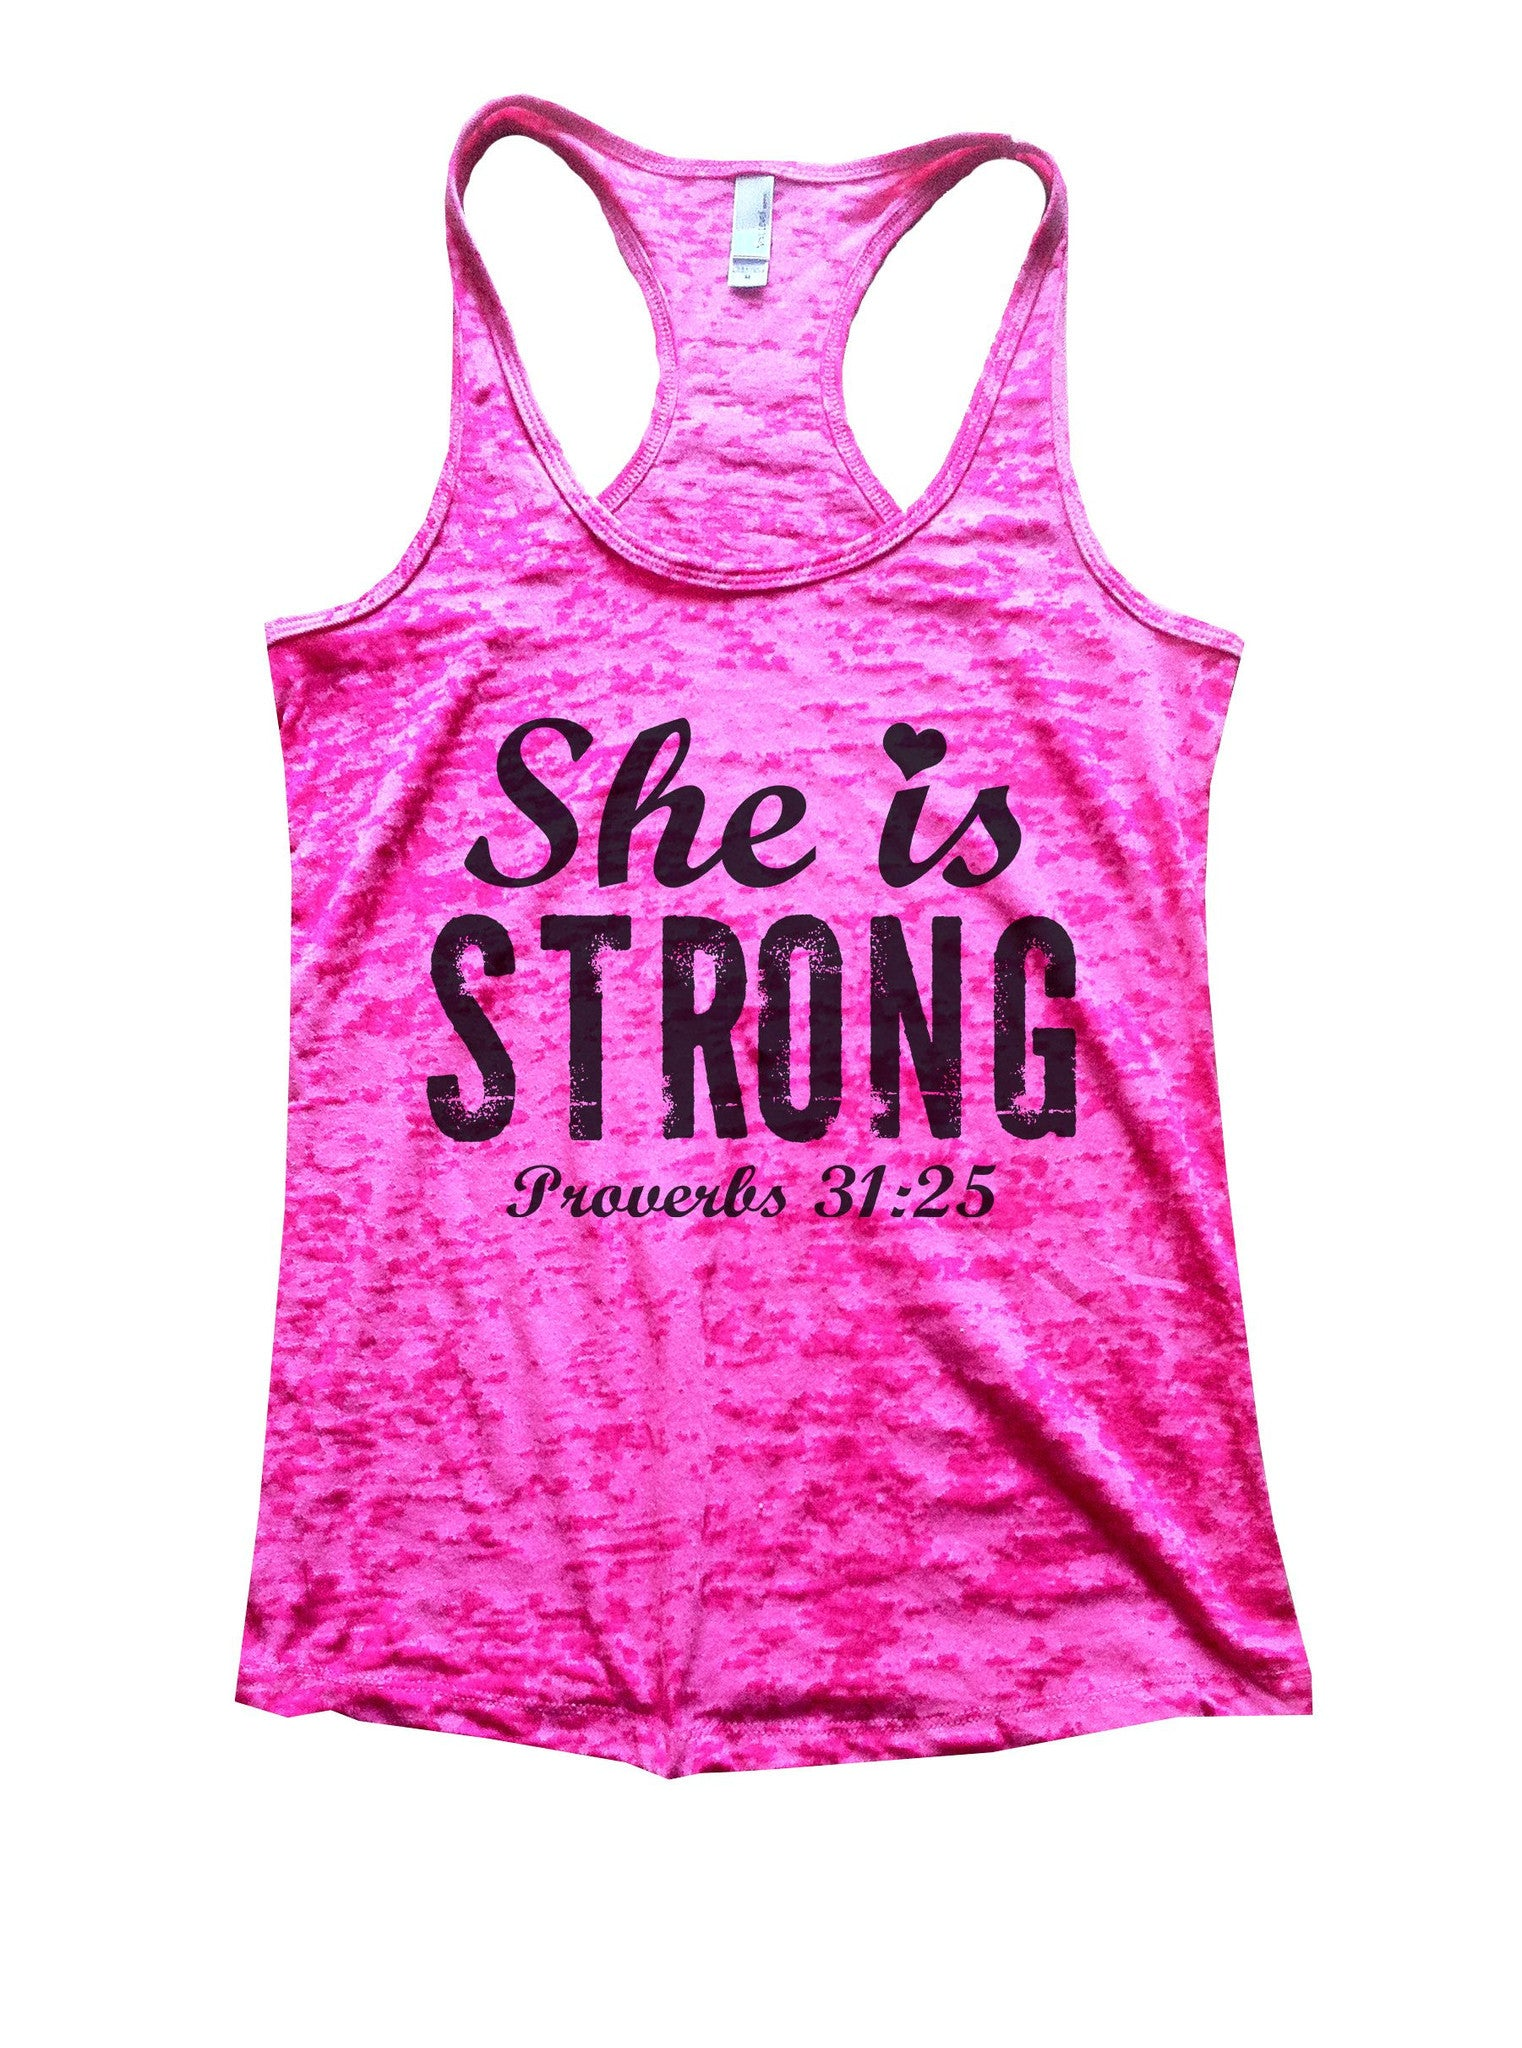 She Is Strong Proverbs 31:25 Burnout Tank Top By BurnoutTankTops.com - 939 - Funny Shirts Tank Tops Burnouts and Triblends  - 5